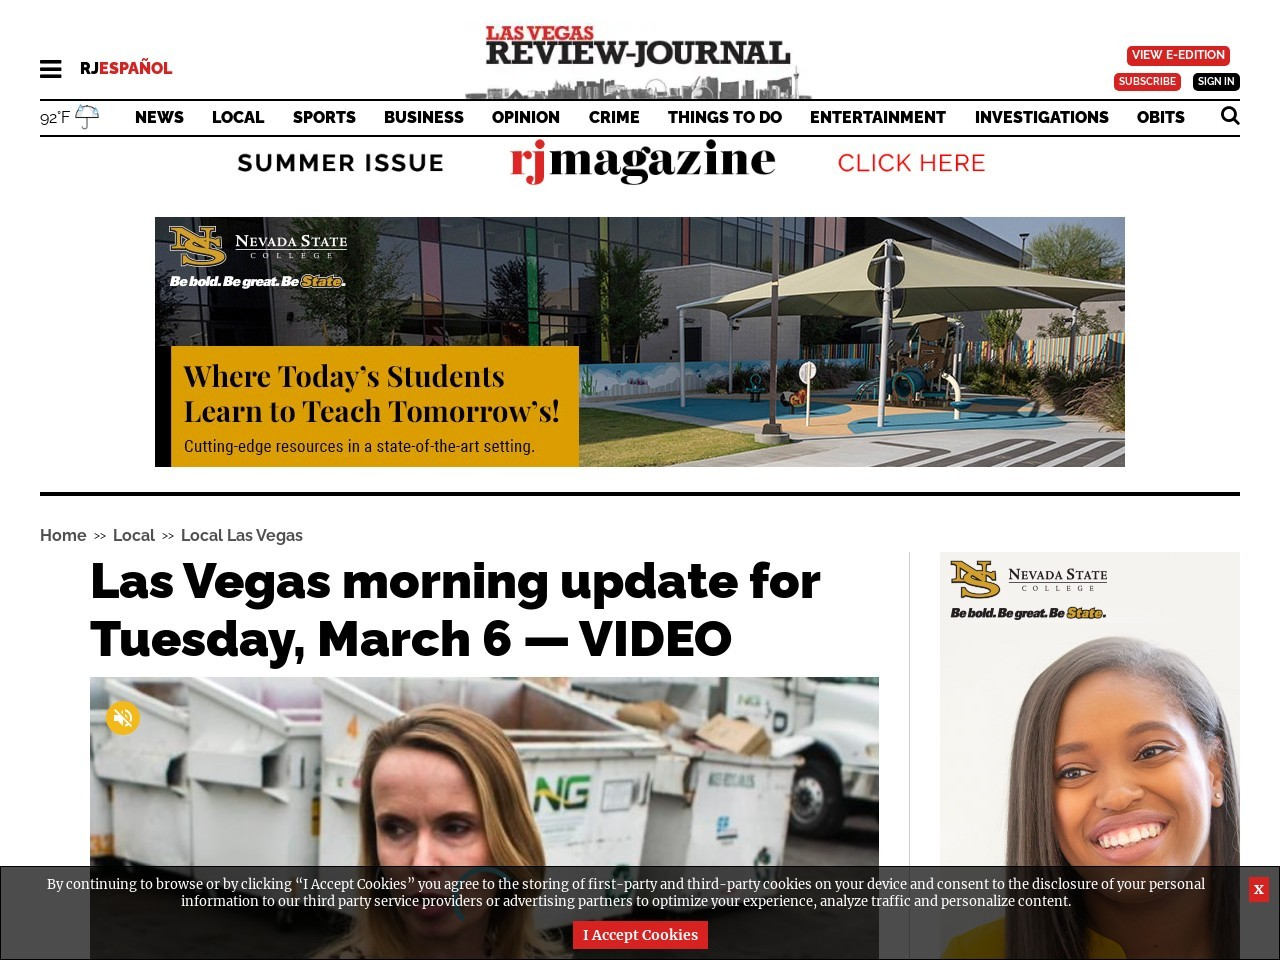 Las Vegas morning update for Tuesday, March 6 — VIDEO